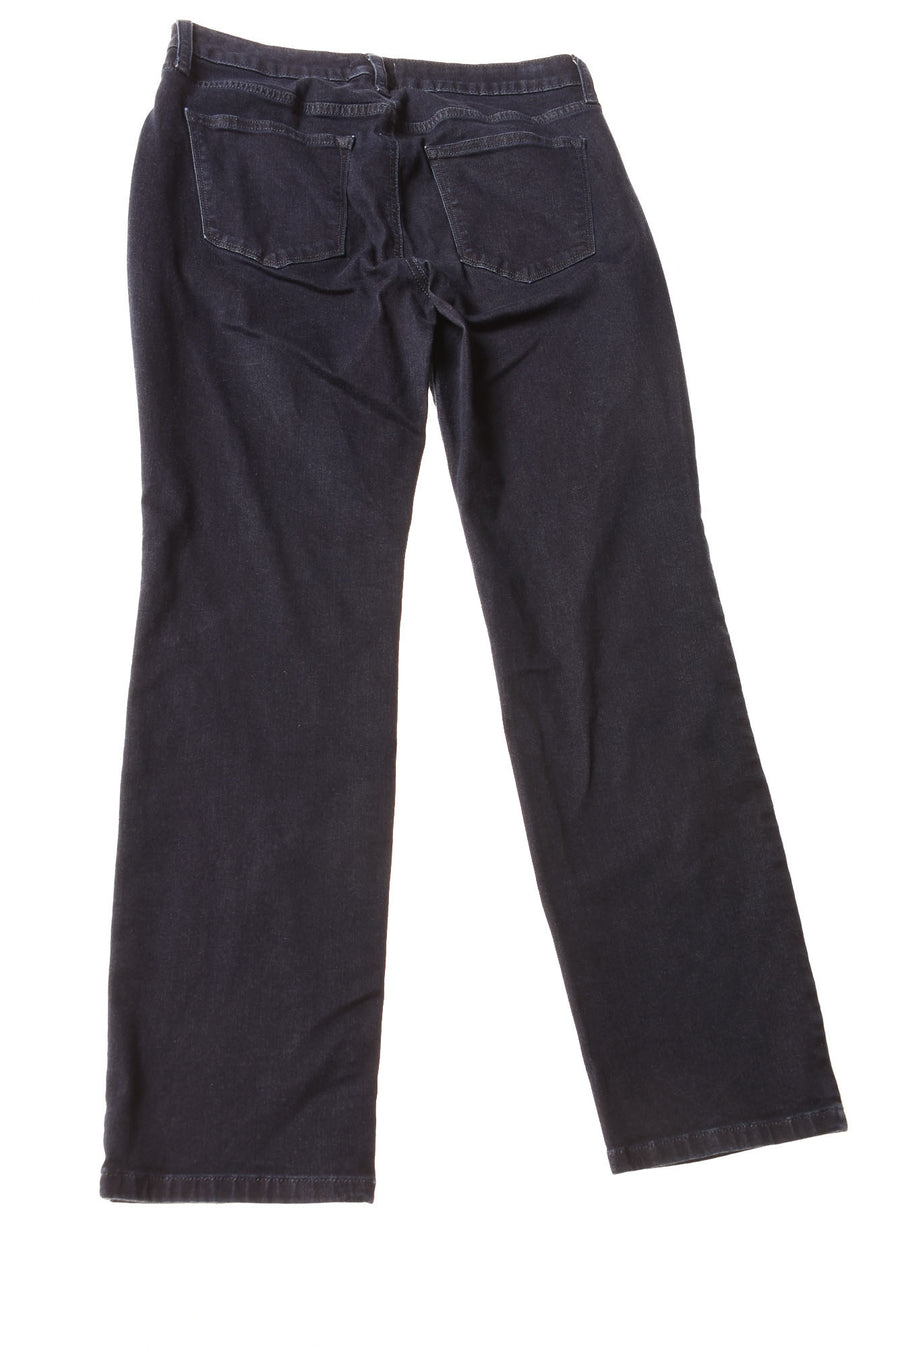 USED Sonoma Women's Jeans 10 Blue